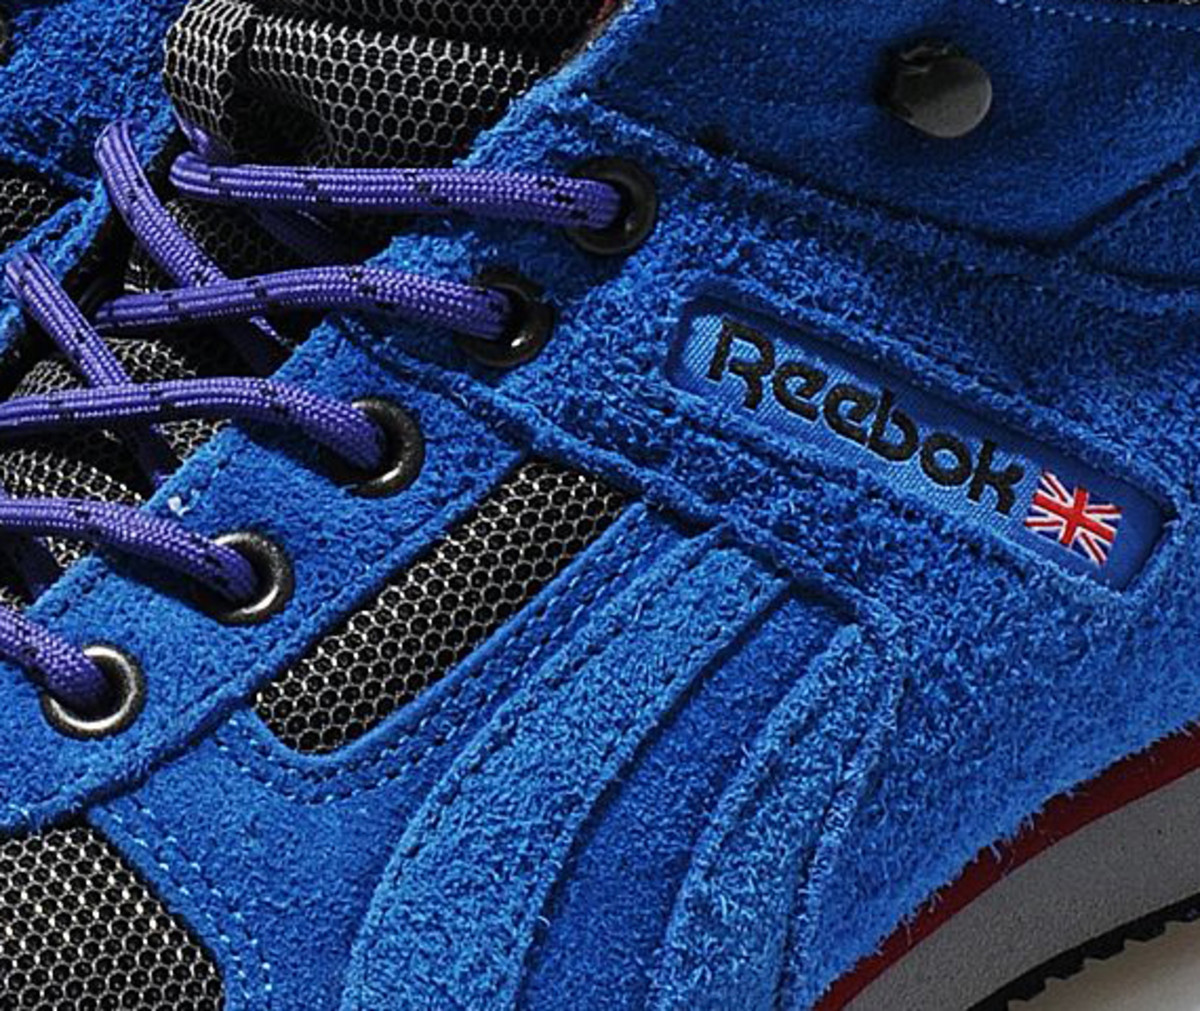 reebok-night-sky-mid-gore-tex-thinsulate-03